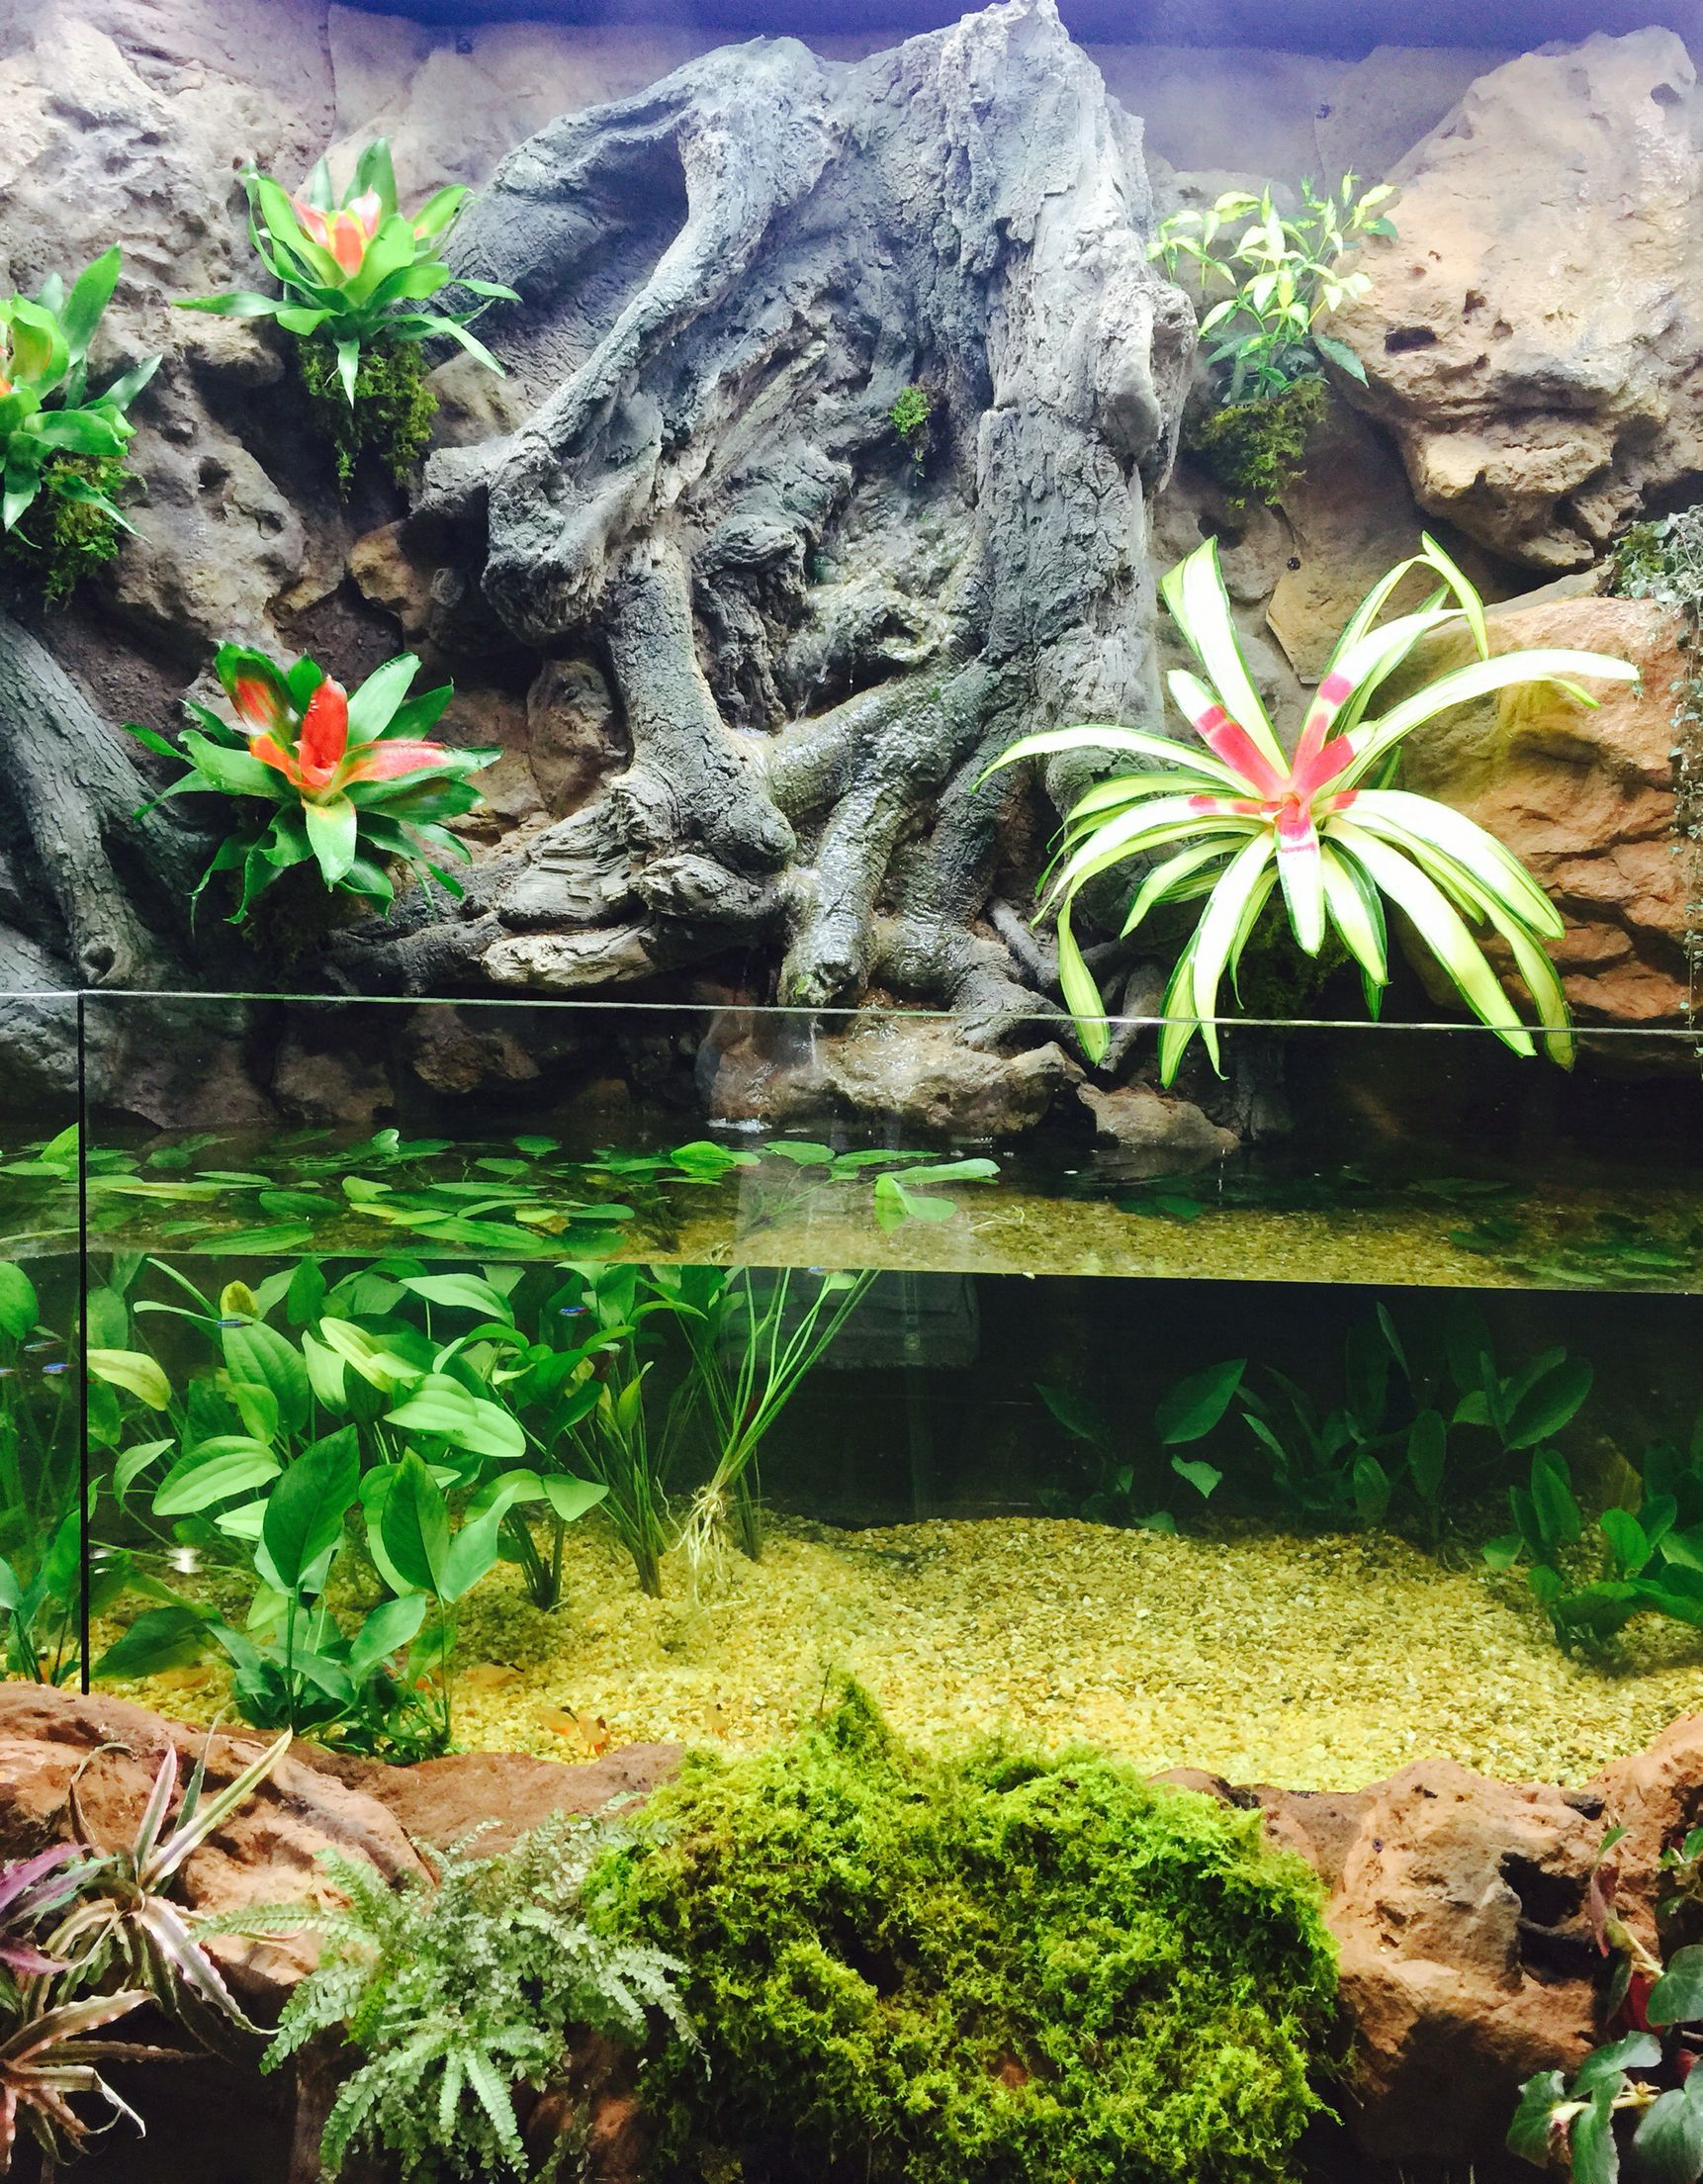 Our Riverbank Tank as seen at The Aquatic Experience Chicago